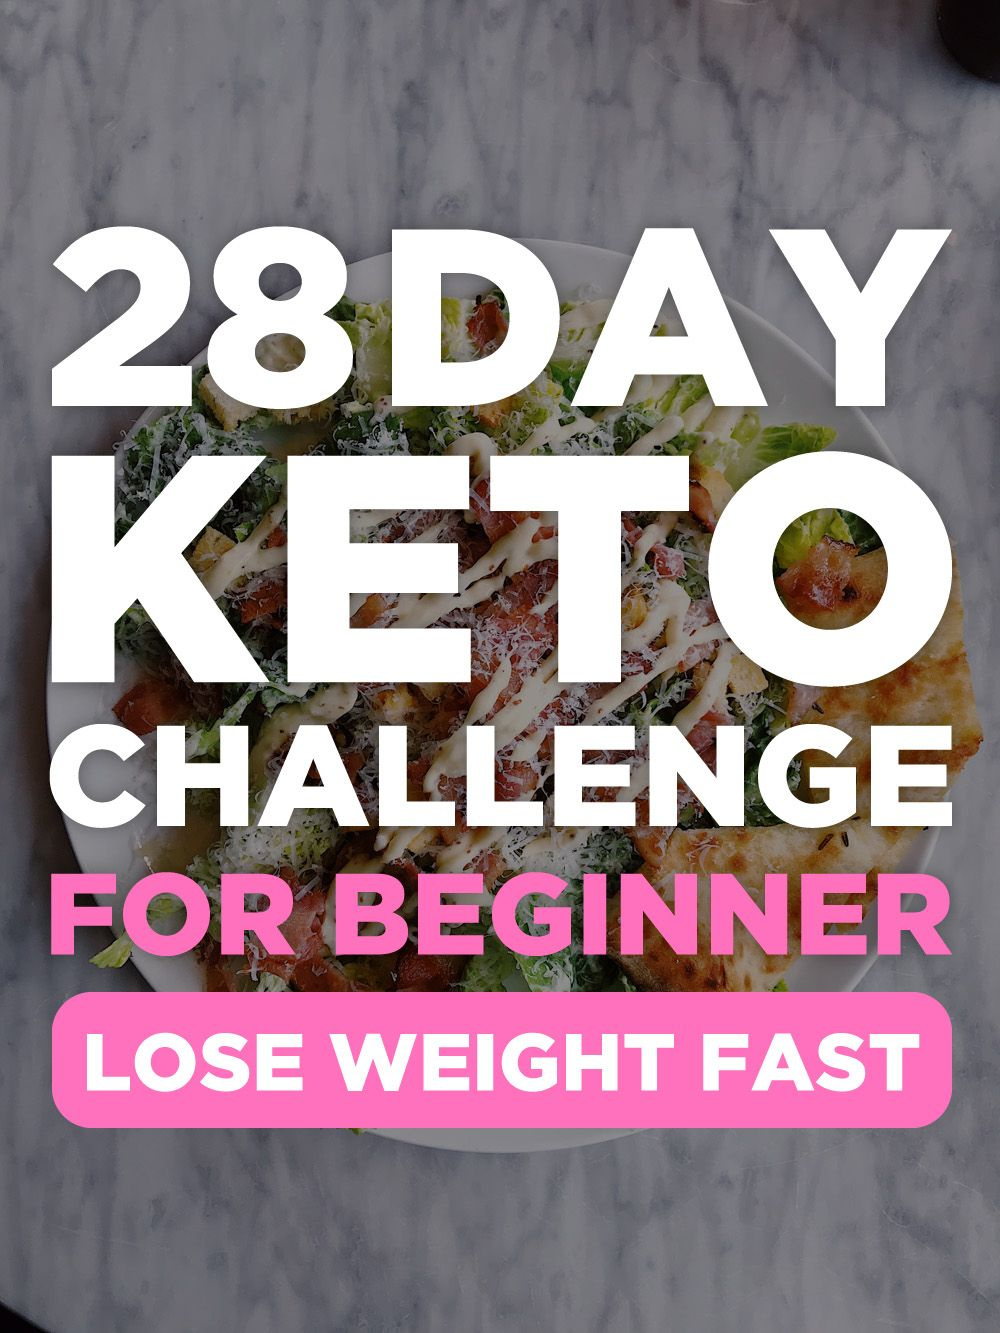 keto diet joe rogan, keto recipe chicken, makers diet recipes, fitness ideas losing weight, keto diet explained, keto recipes breakfast, keto diet guidelines, keto breakfast, keto diet cheat day, low carb chicken dinners, weight loss cleanse, mederteranian diet recipes, lose 80 pounds in 6 months, protien diet, weight loss nutrition plan, keto diet free, low carb diet recipes, diet for abs women, weight loss fitness, keto diet vitamins, motivate to lose,